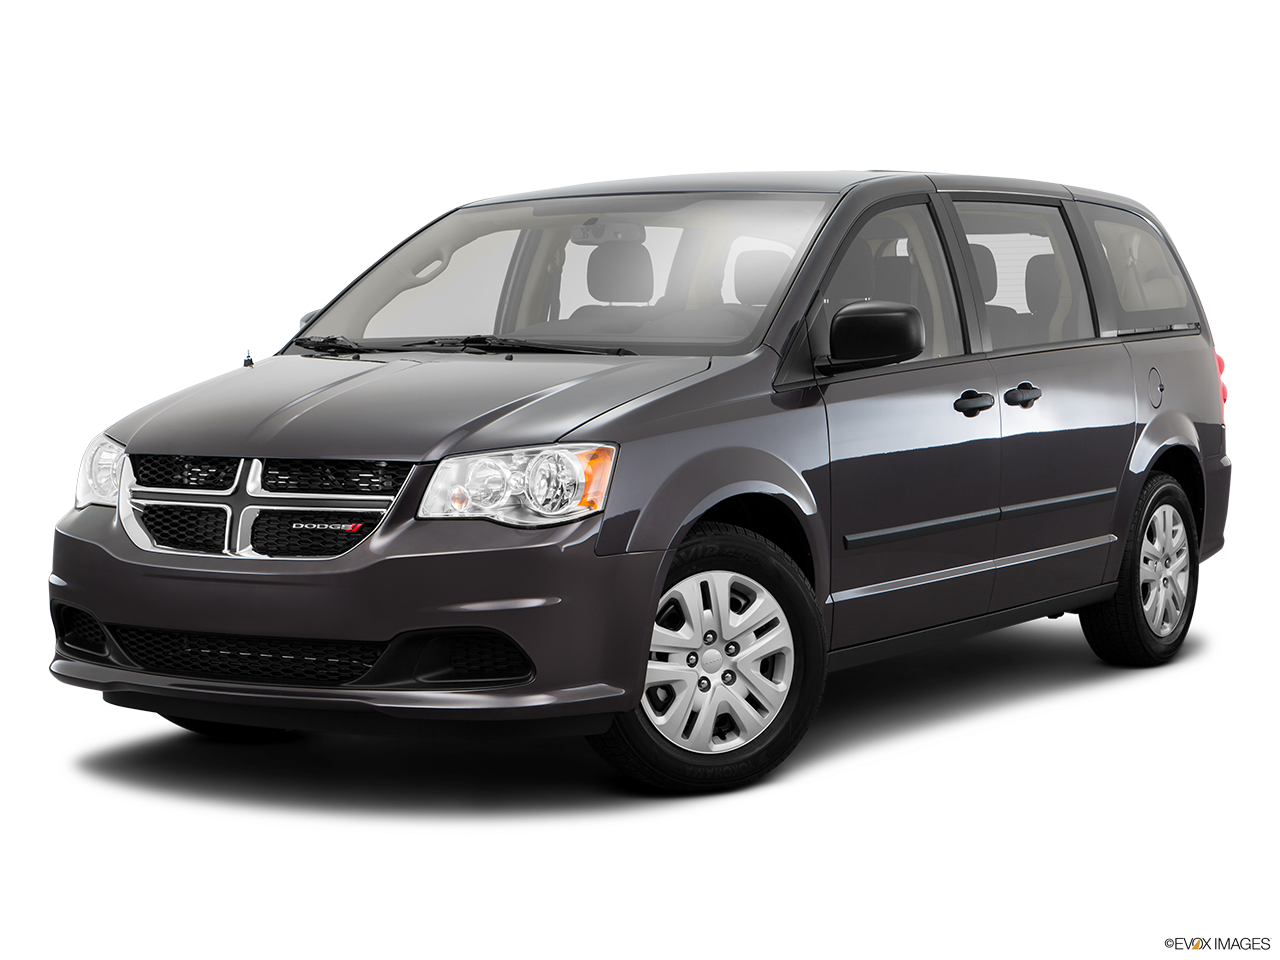 Test Drive A 2016 Dodge Grand Caravan at Moss Bros Chrysler Dodge Jeep Ram Riverside in Riverside